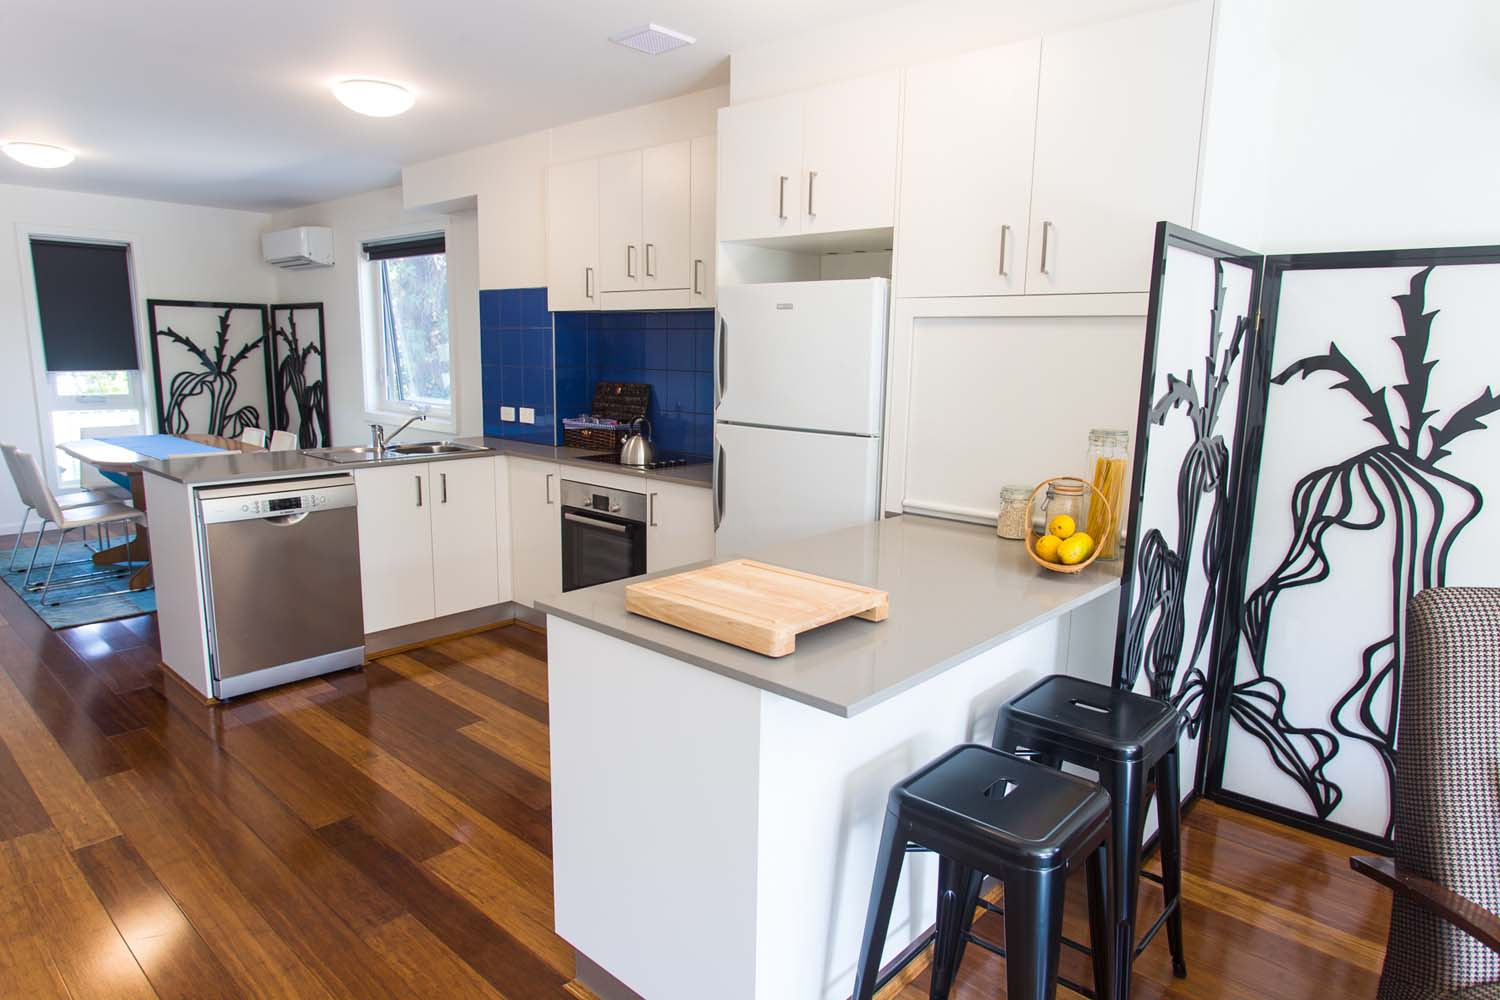 All apartments include a lovely big kitchen, perfect for cooking up a storm.